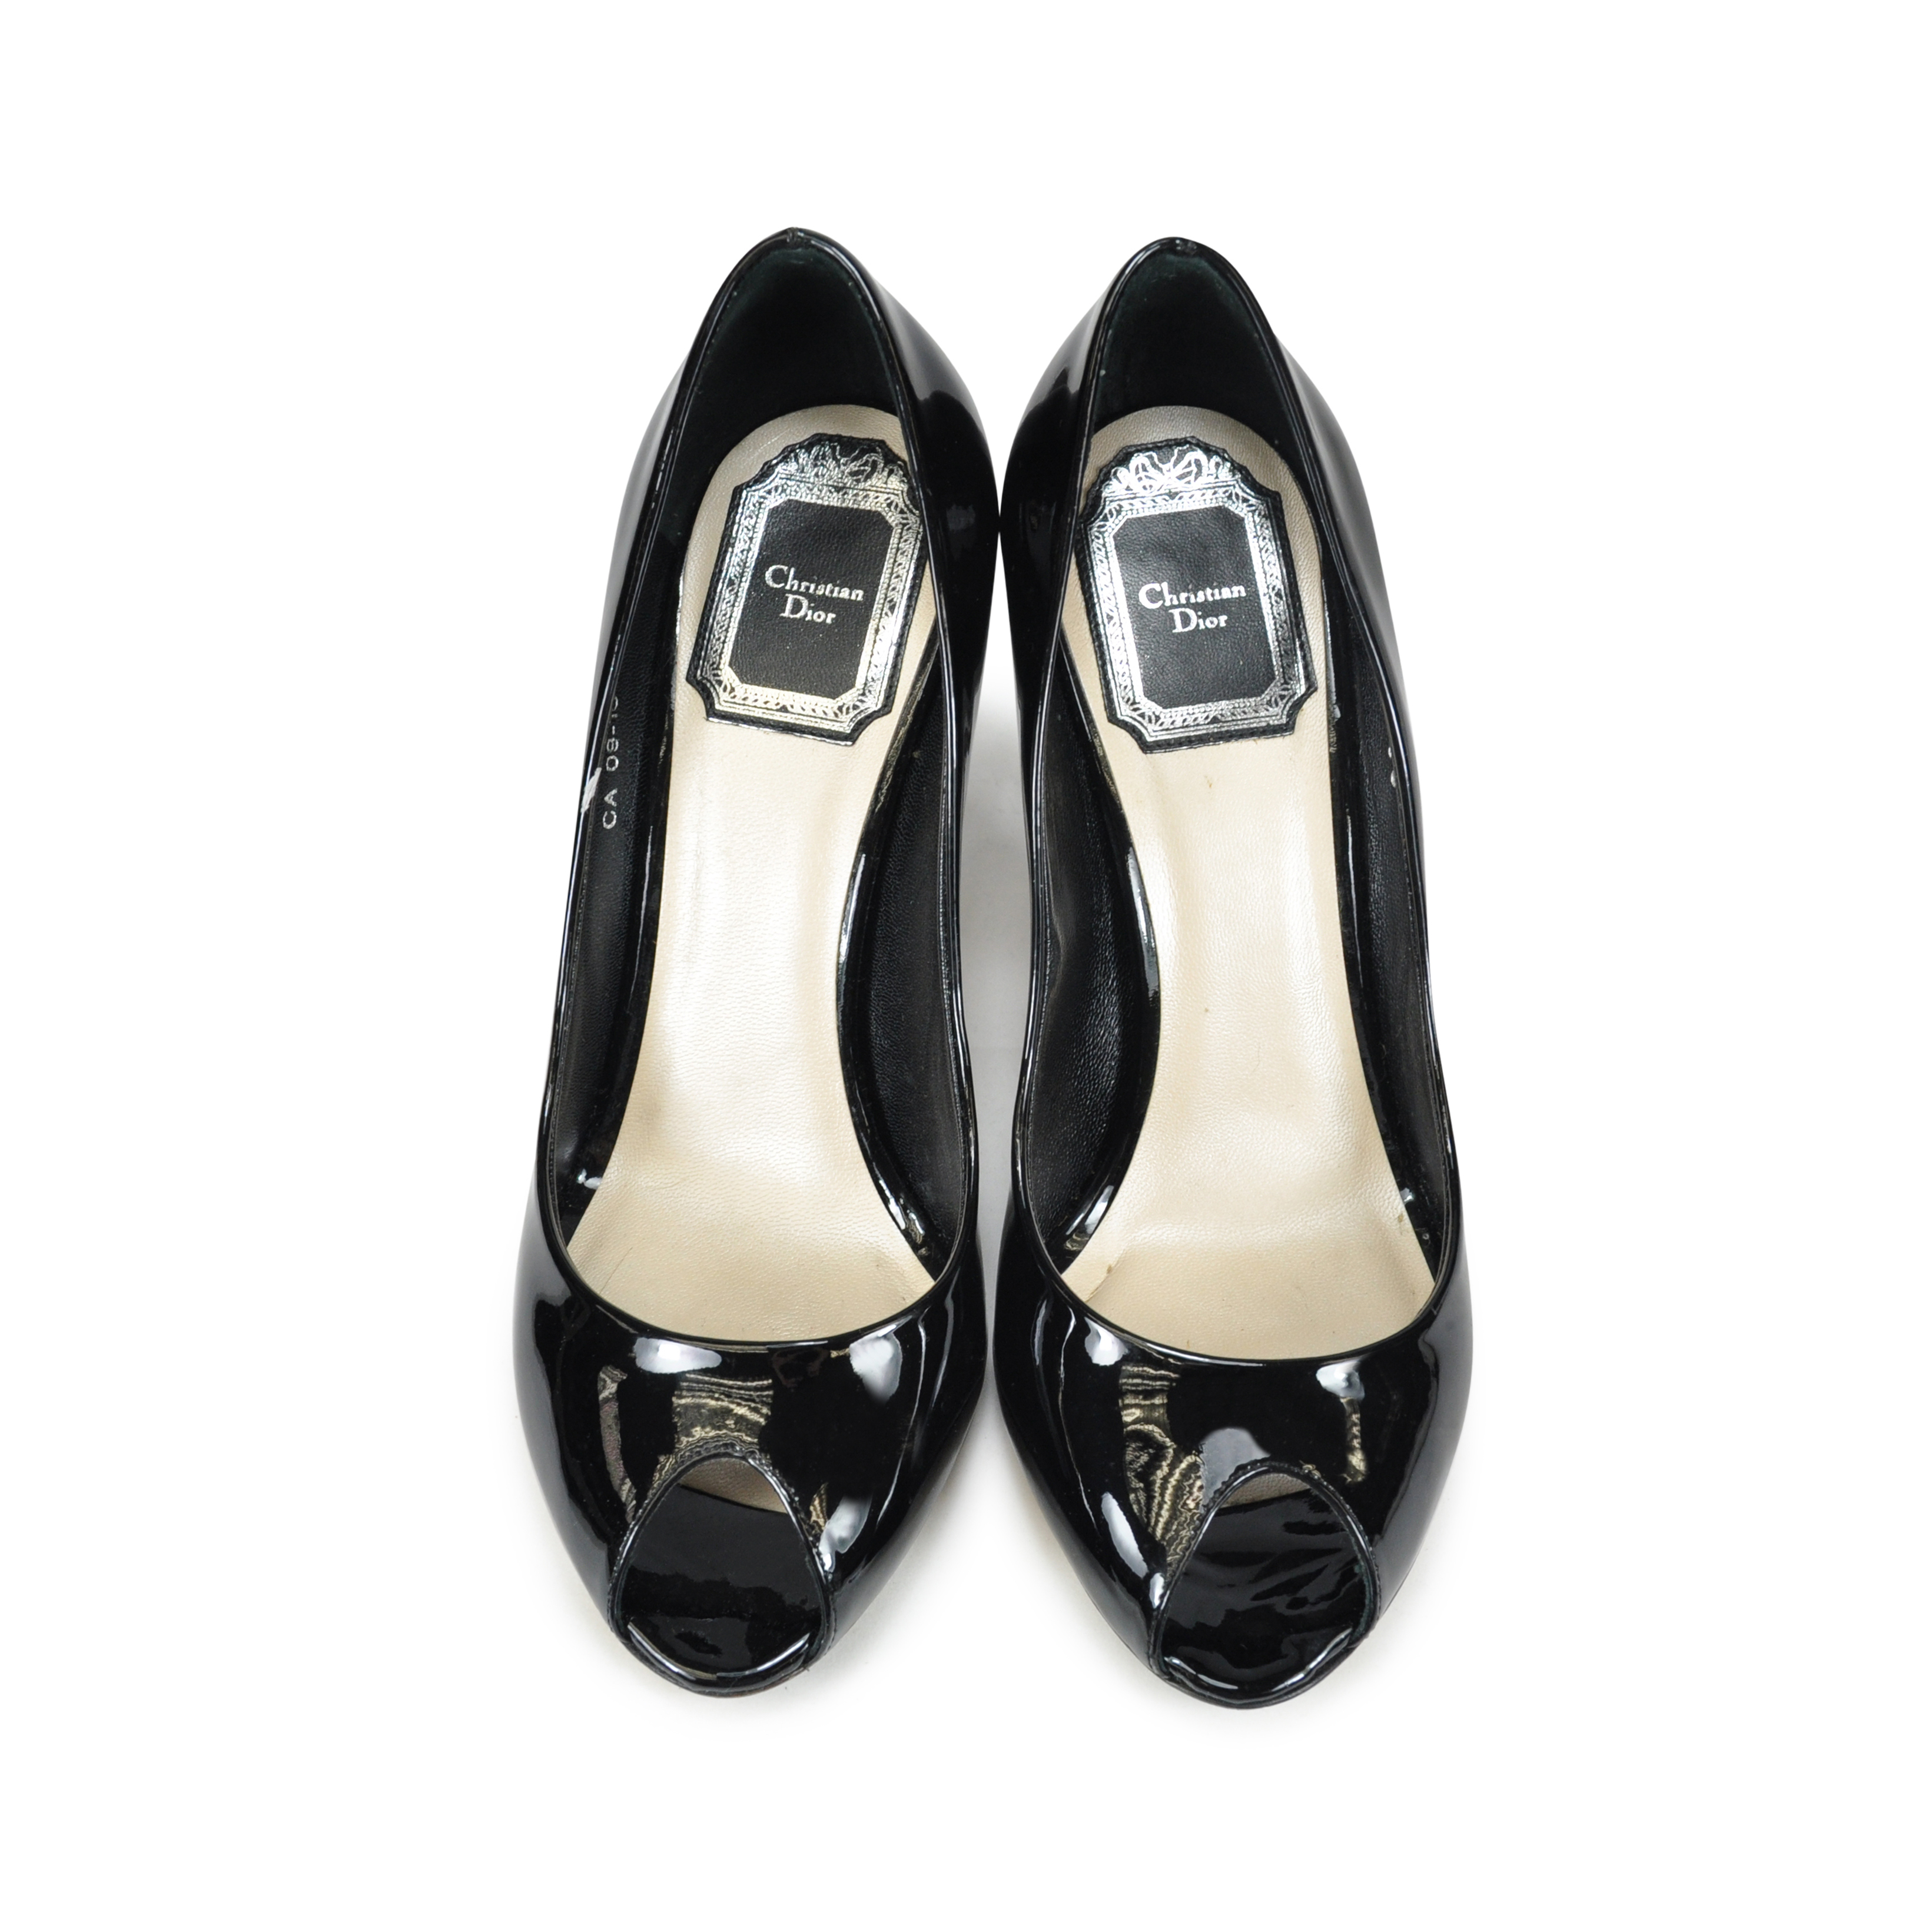 cdbe33e0470 Authentic Second Hand Christian Dior Miss Dior Pumps (PSS-062-00005 ...